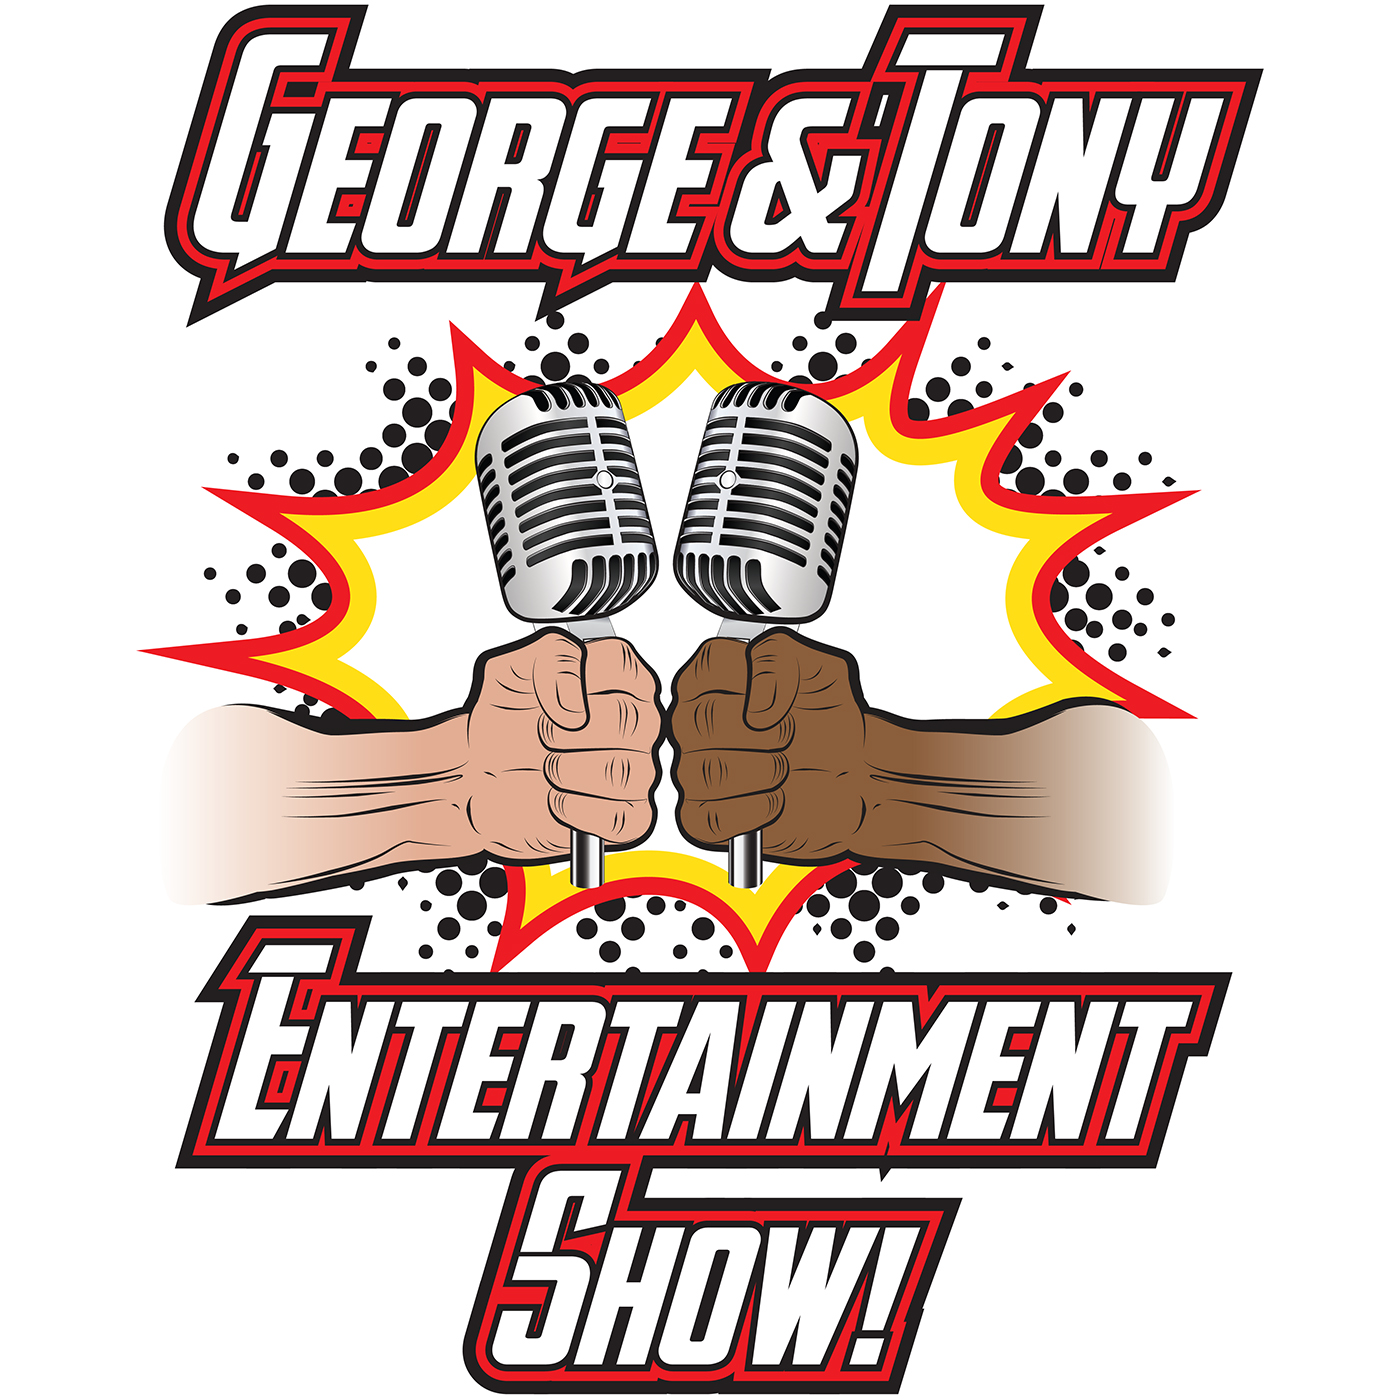 George and Tony Entertainment Show #46